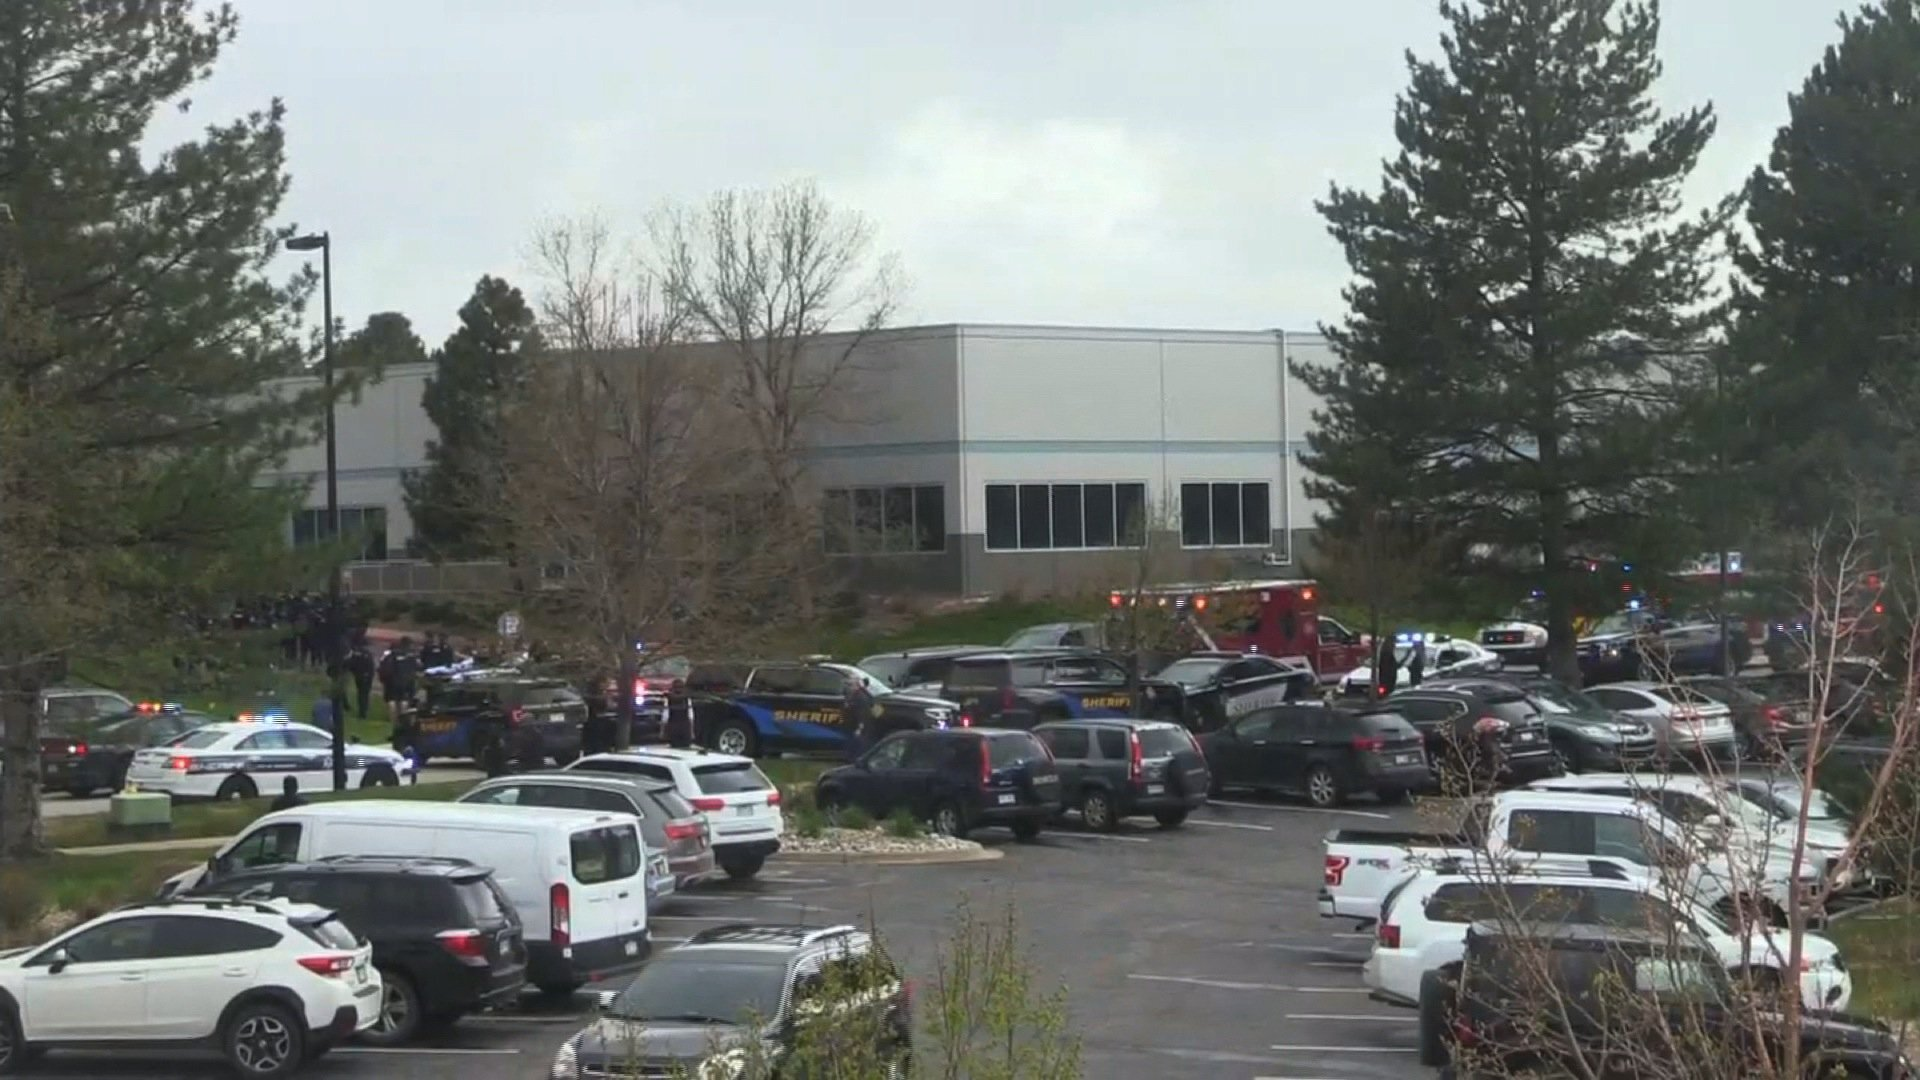 Photos: One student dead in school shooting in suburban Denver, 8 others injured